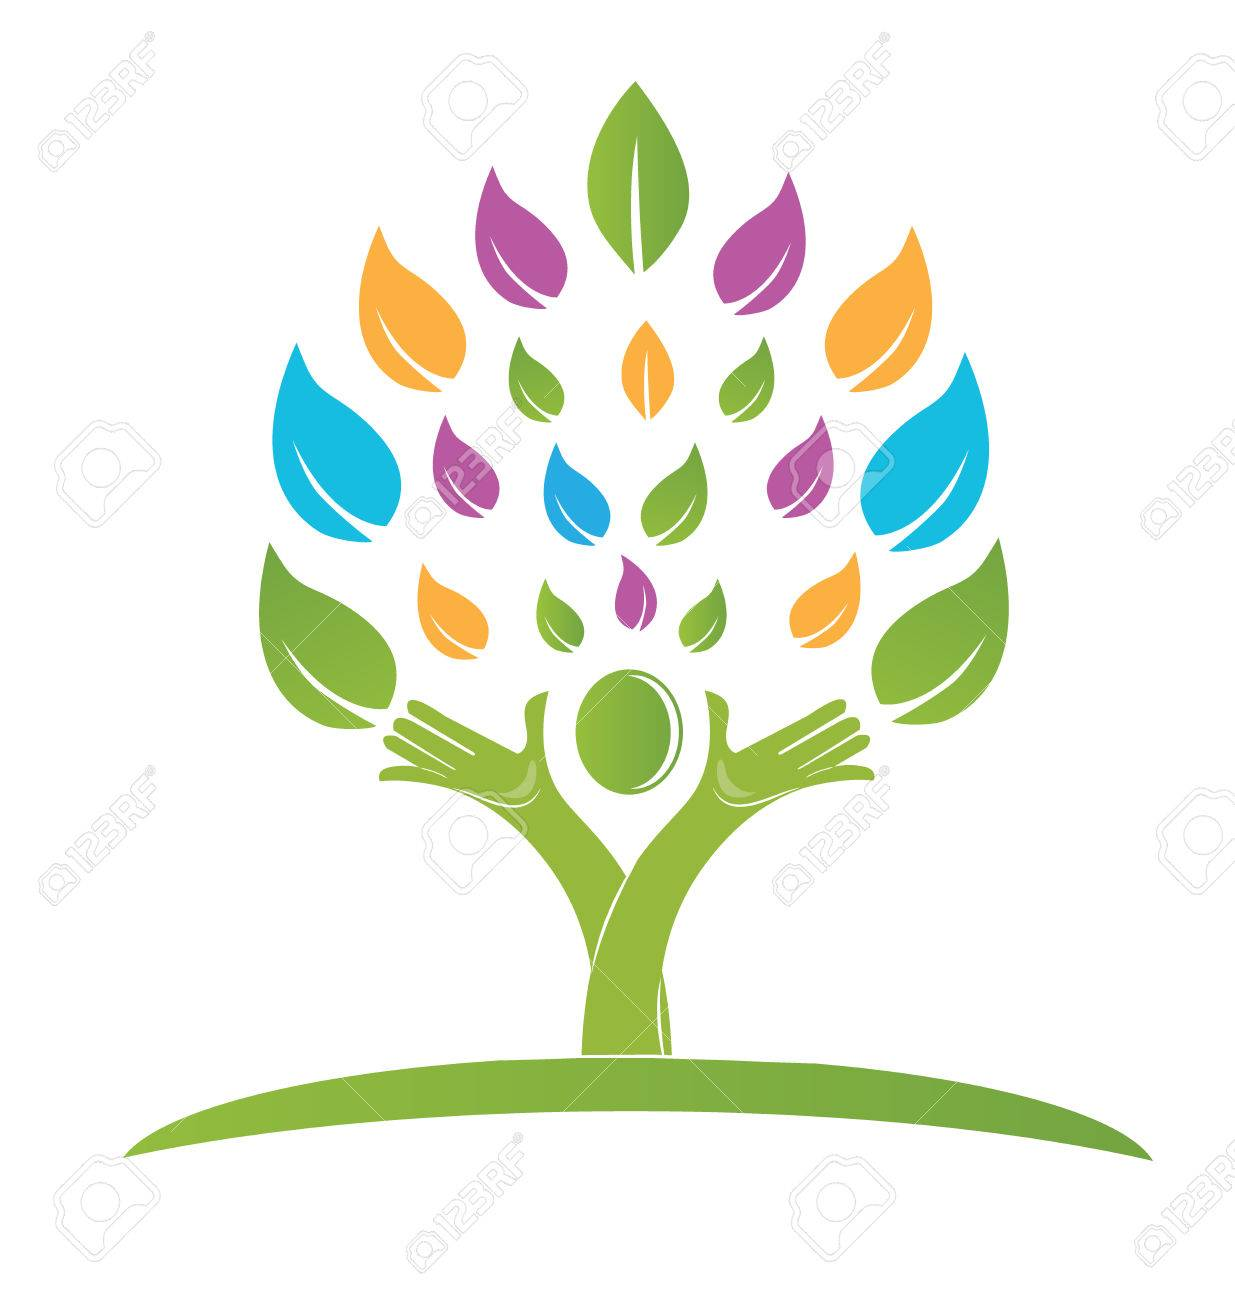 Tree With Hands Colorful Logo Vector Royalty Free Cliparts, Vectors ...